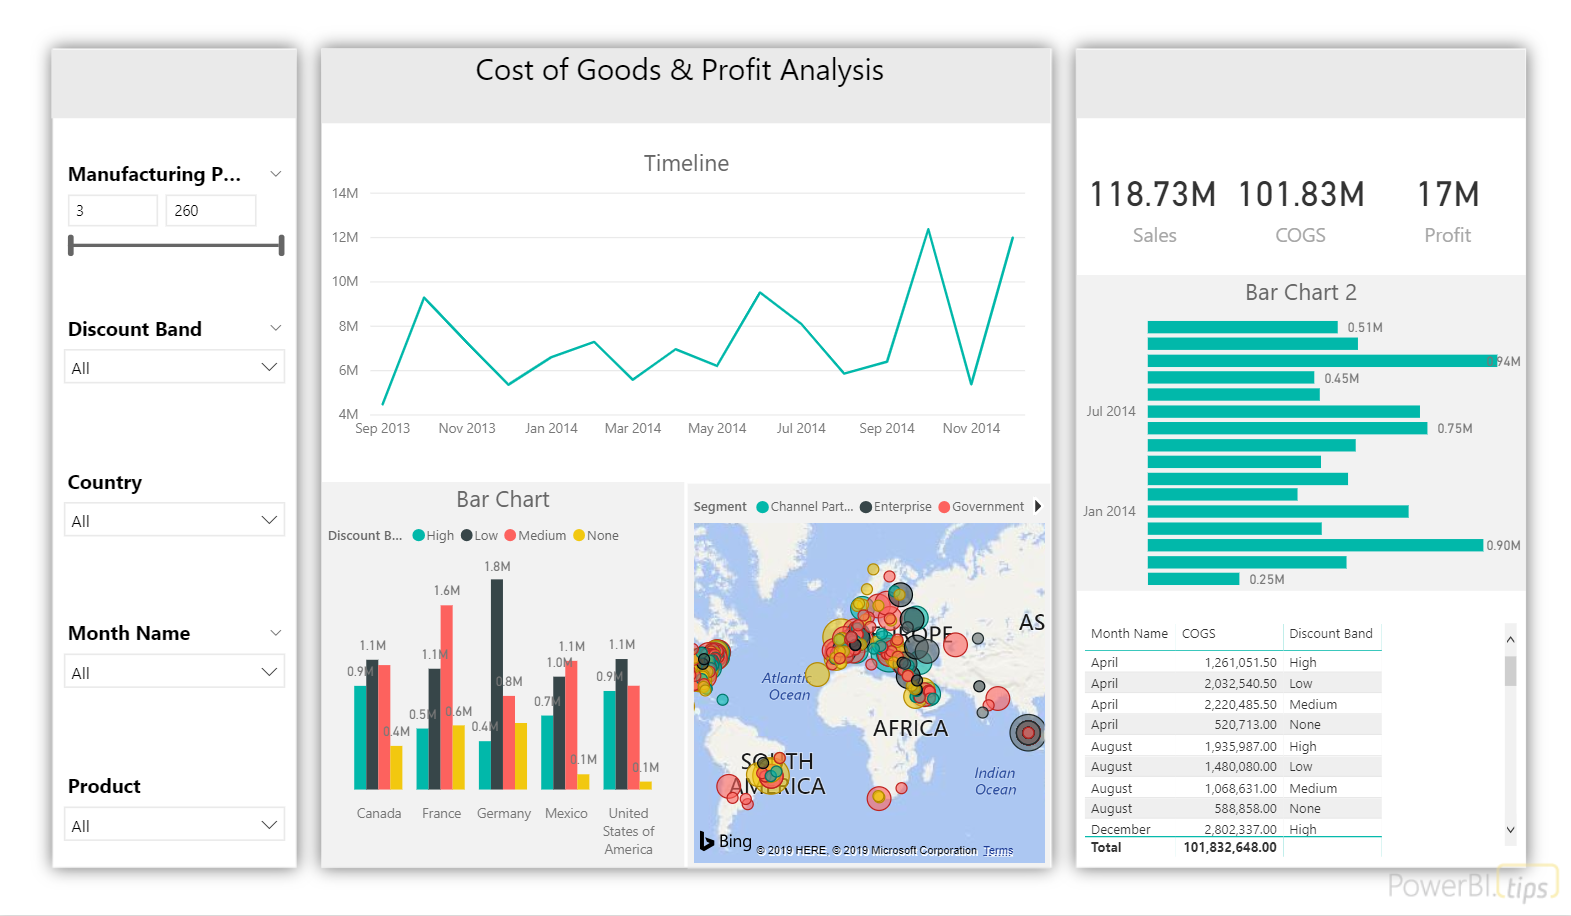 Cost of Goods & Profit Analysis